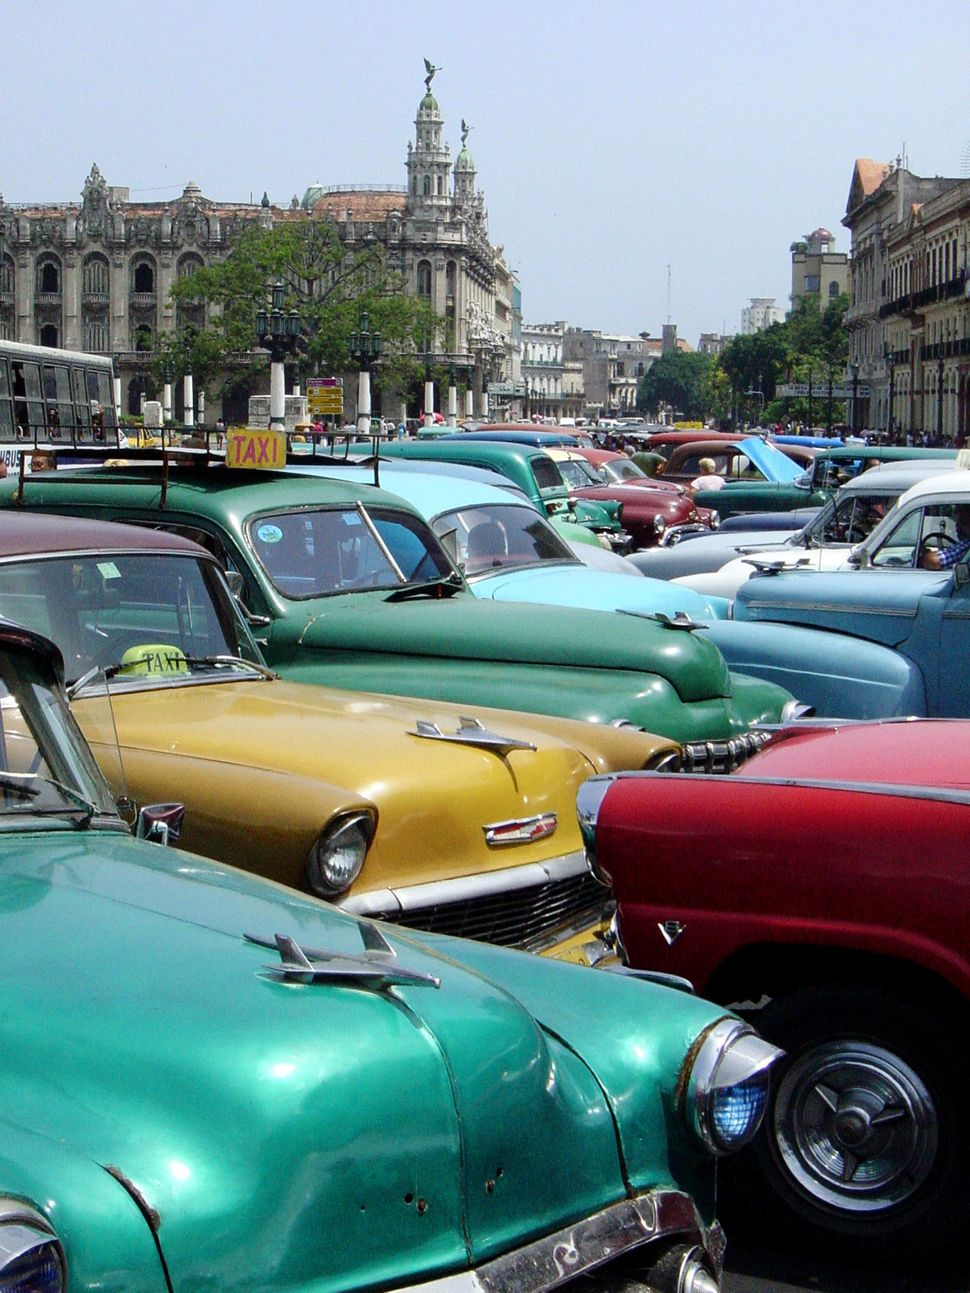 2003 - Several earlier model American-made cars wait to be rented in Havana. New car imports have been allowed in Cuba since